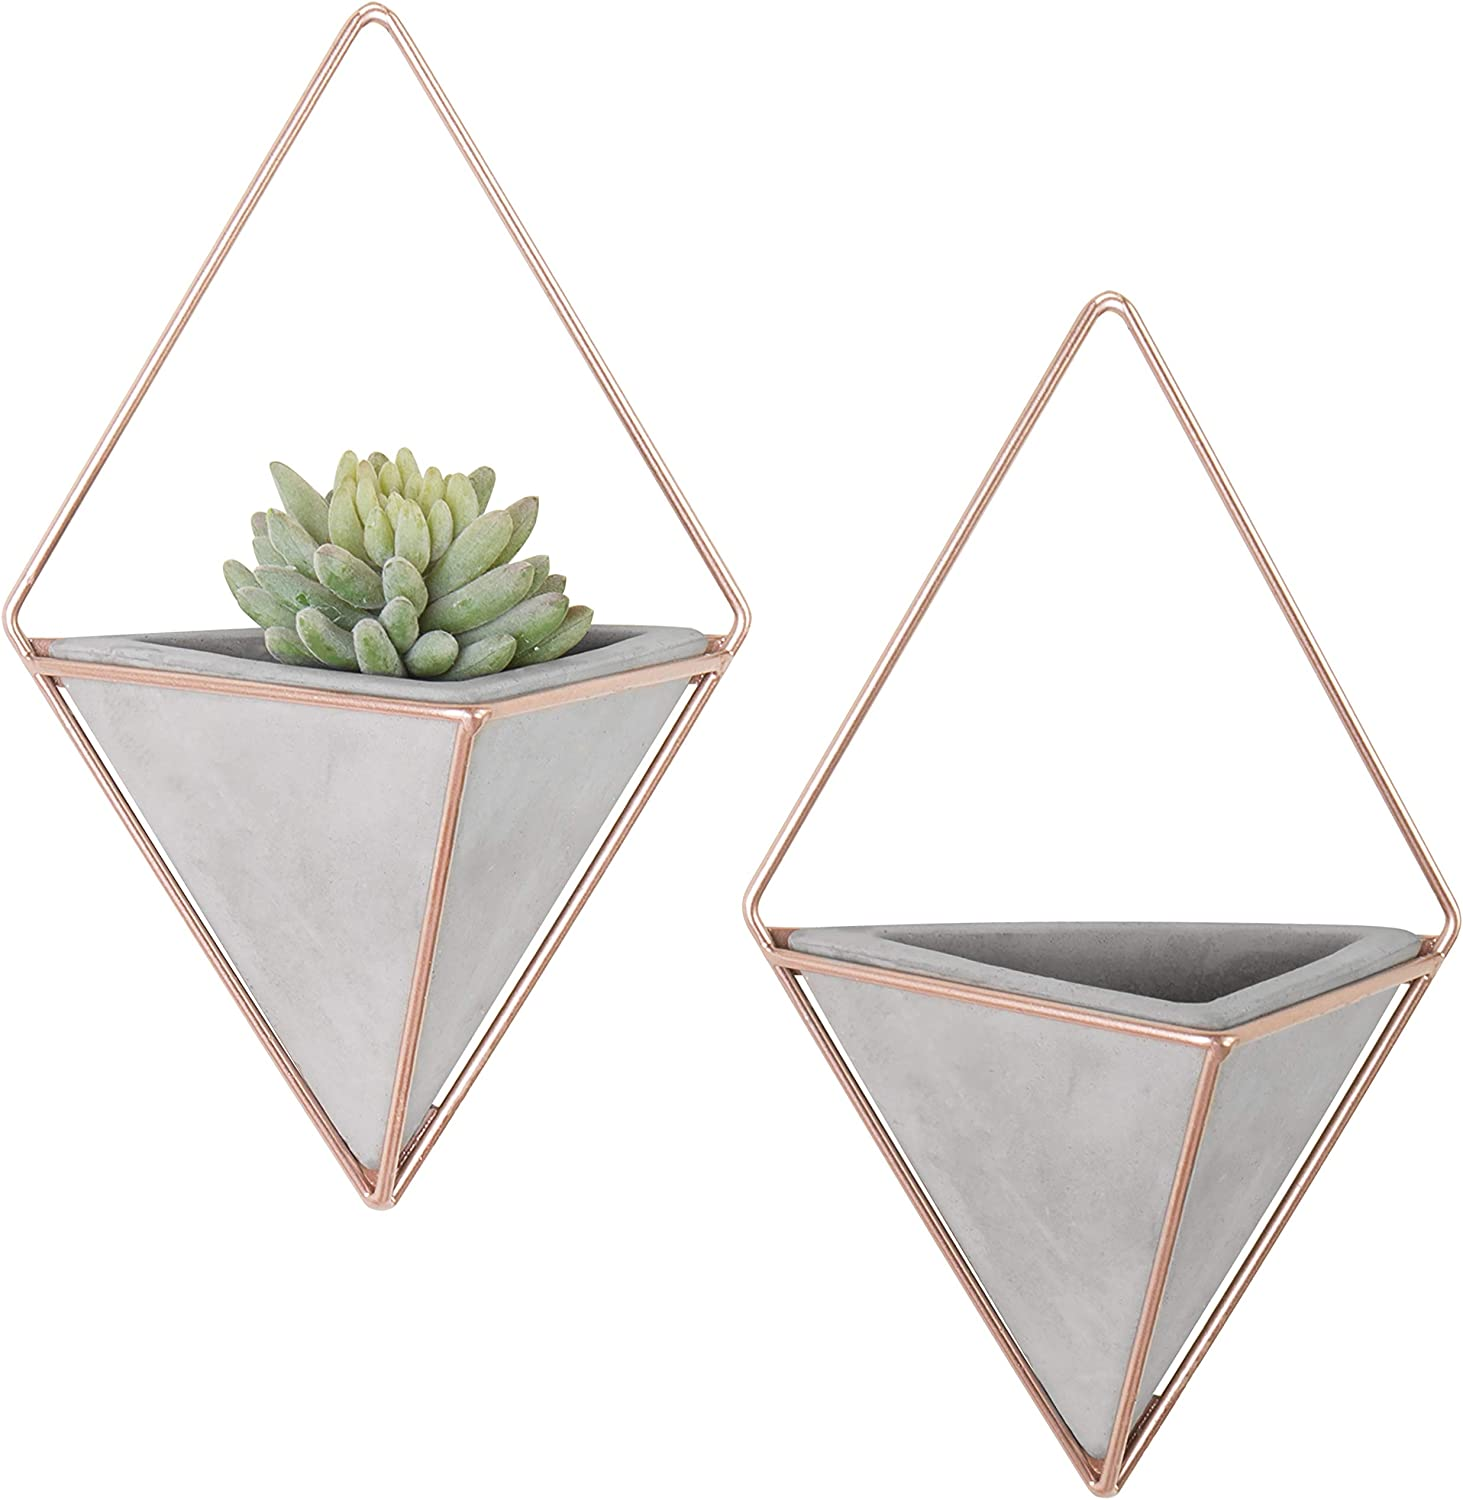 MyGift Set of 2 Triangular Cement Hanging Wall Planters with Rose Gold-Tone Metal Frames